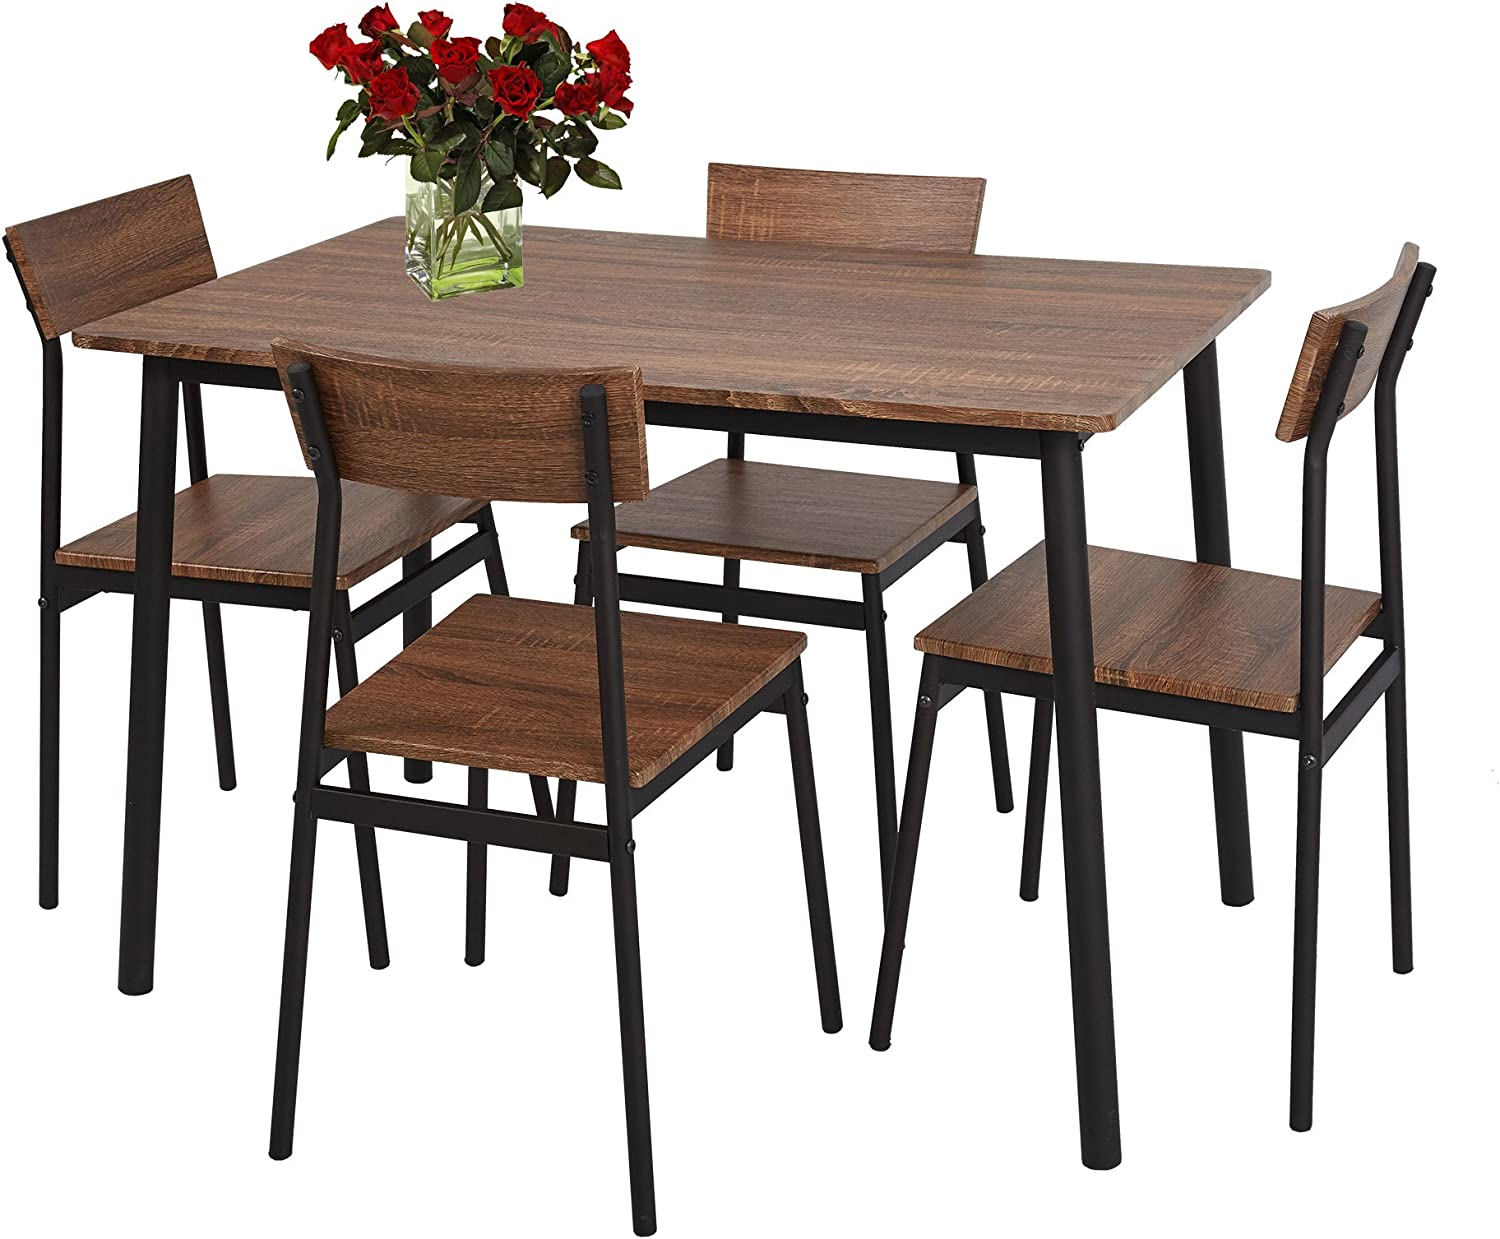 Buy LUCKYERMORE 9 Piece Dining Table Set Rustic Wooden Kitchen ...